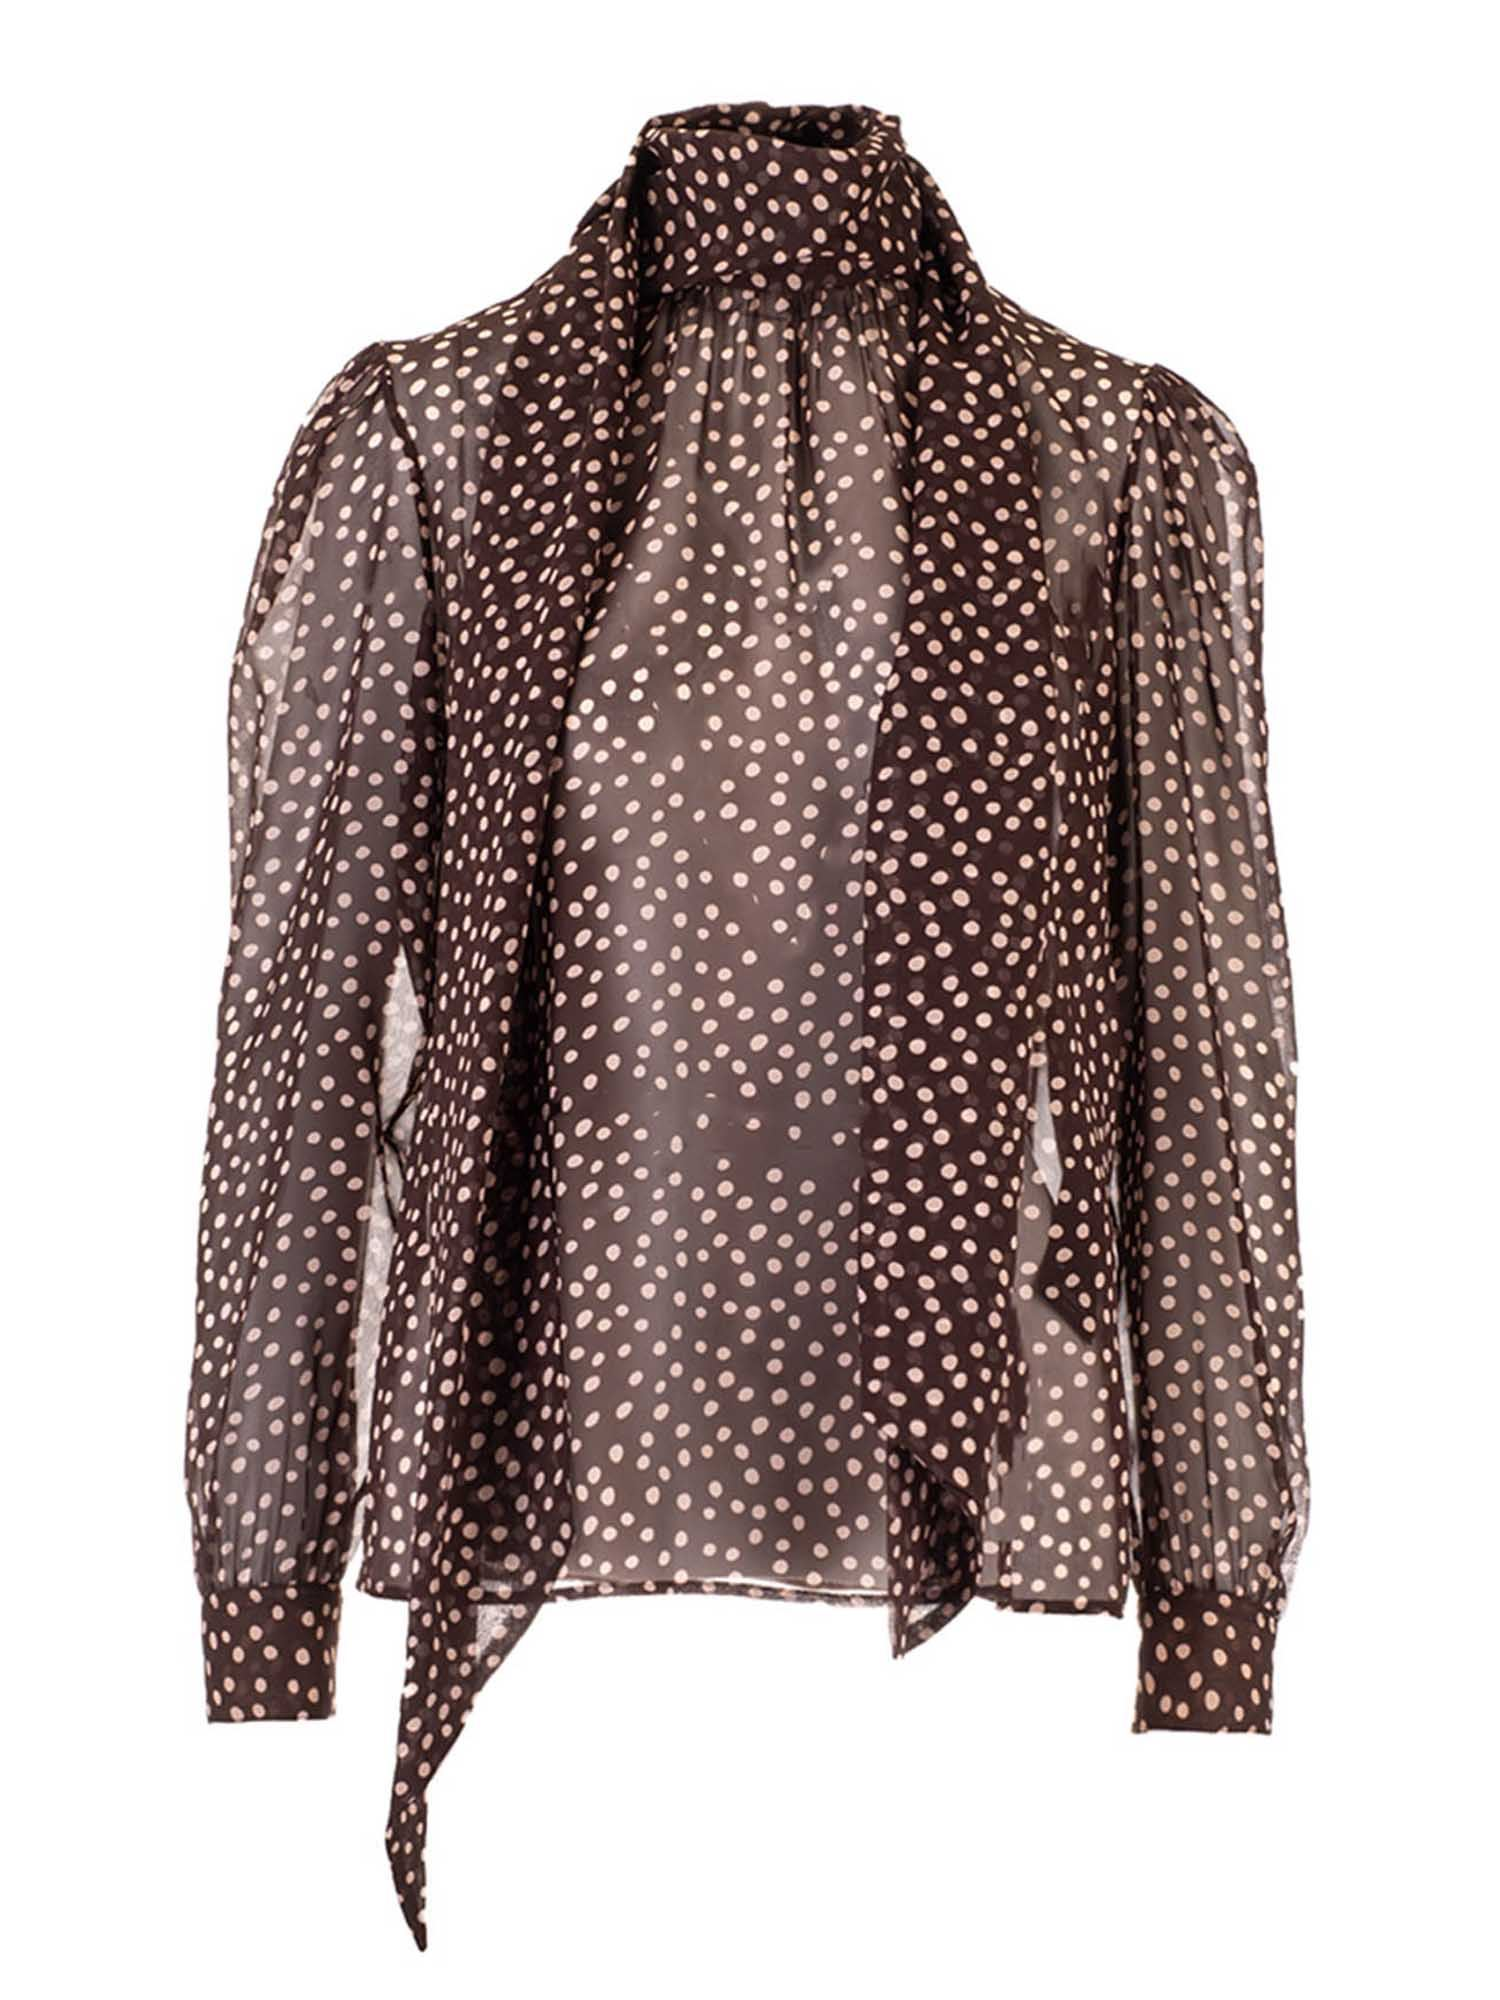 Saint Laurent POLKA DOT LAVALLIÈRE COLLAR BLOUSE IN BROWN